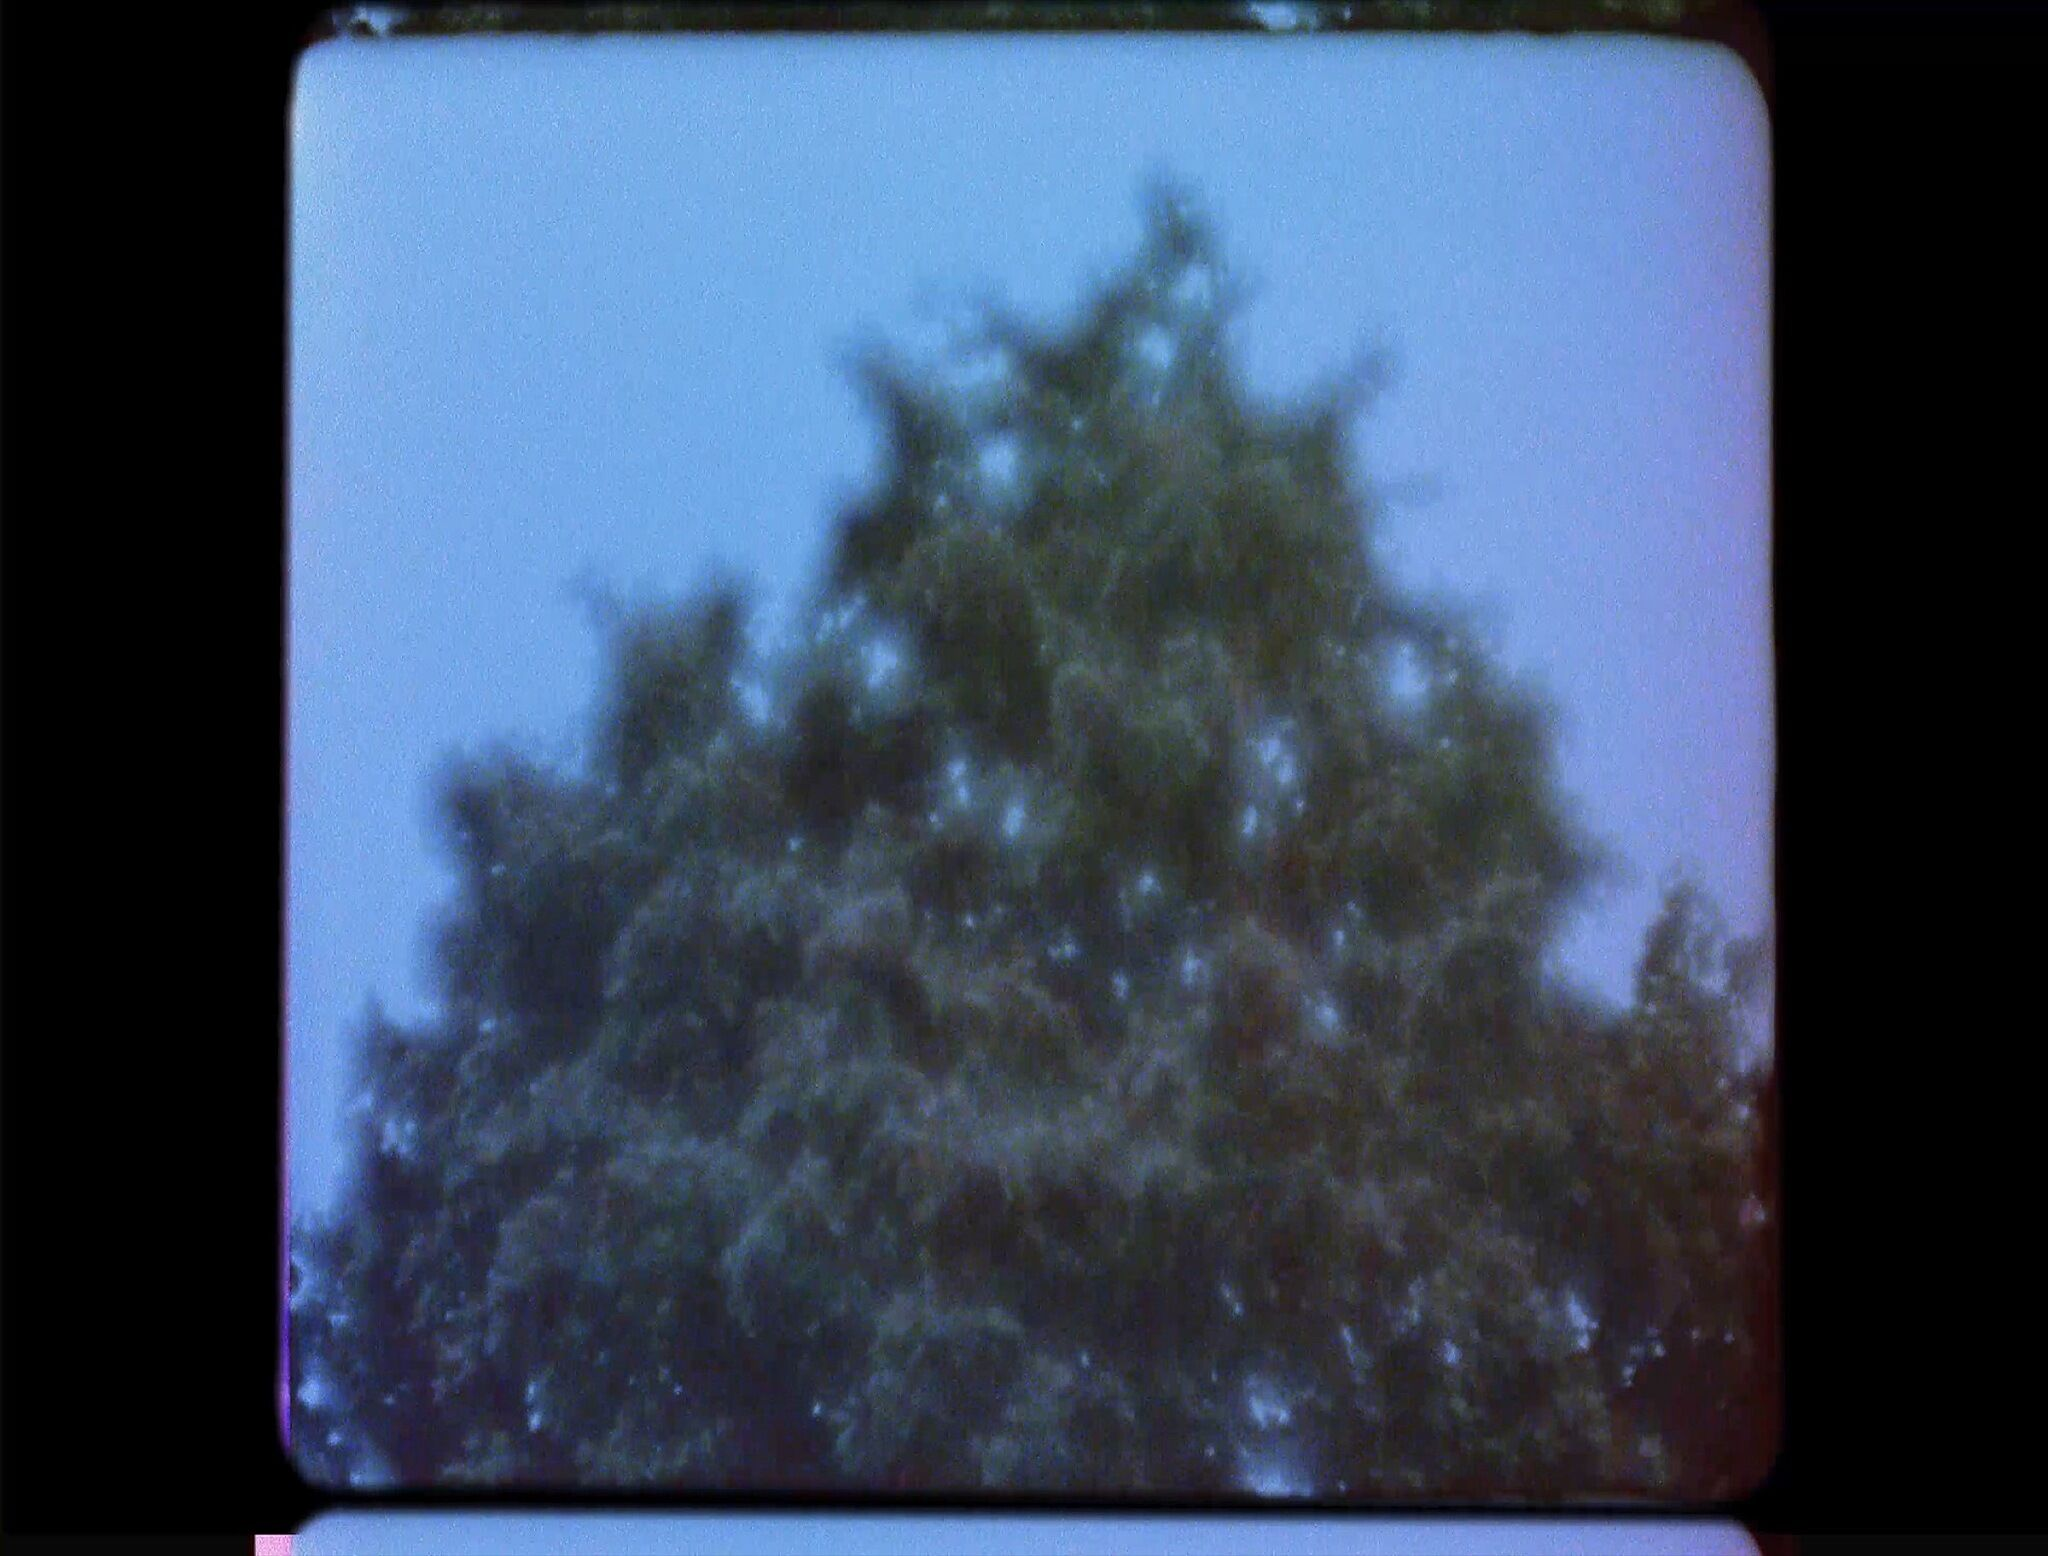 A film still of a tree.